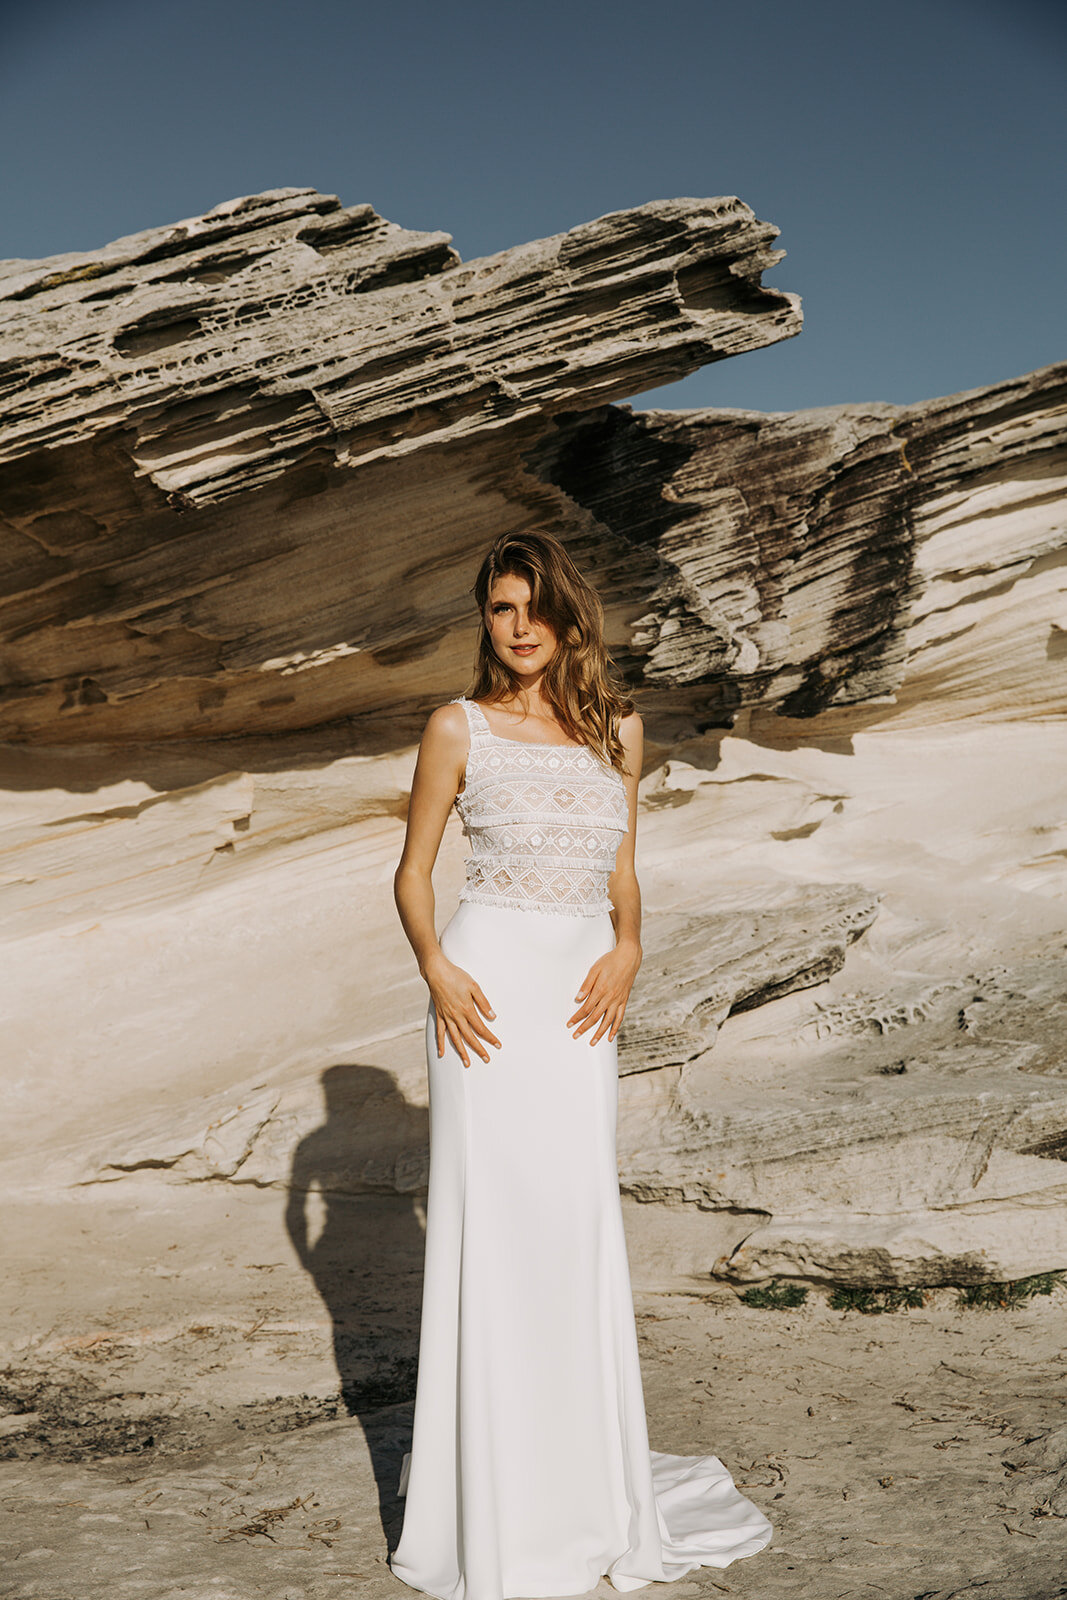 Amber Wedding dress by Tanya Anic designed and made in